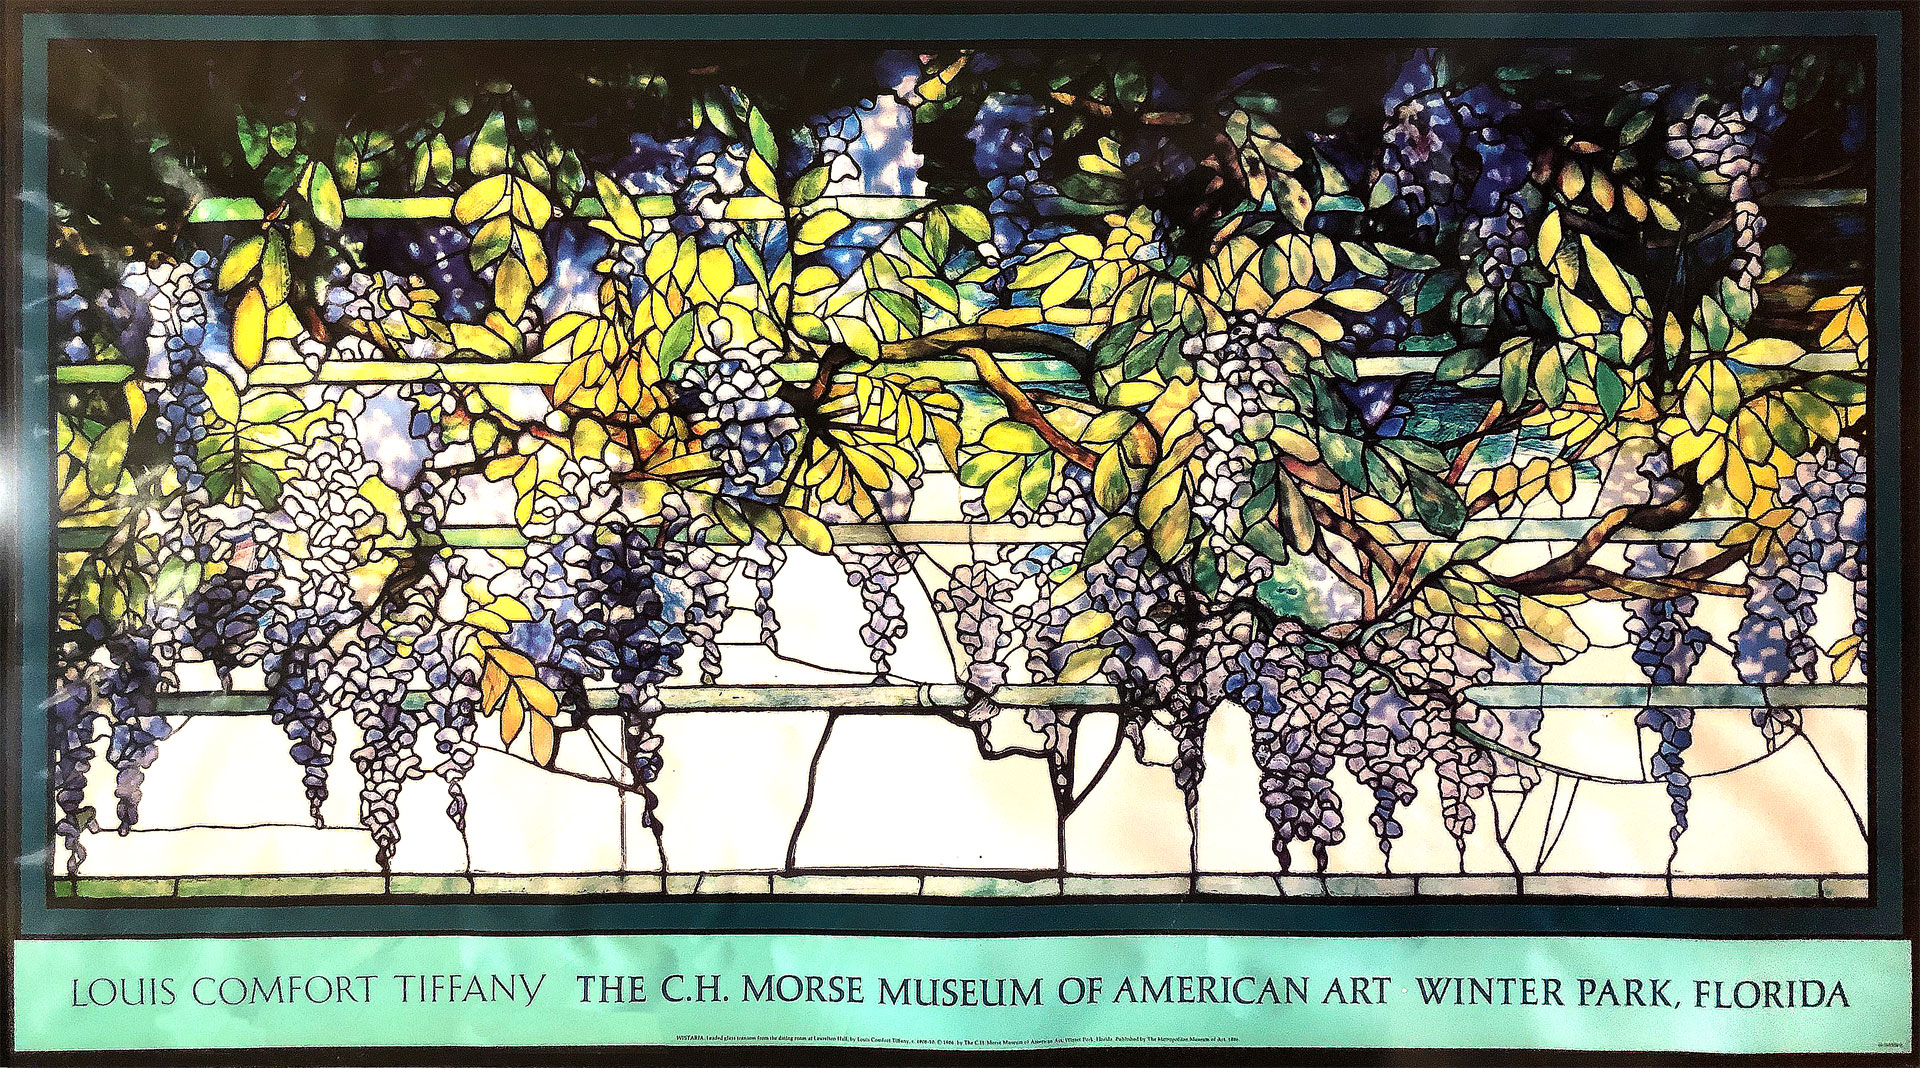 Tiffany's Poster for the Metropolitan Museum by John Chao